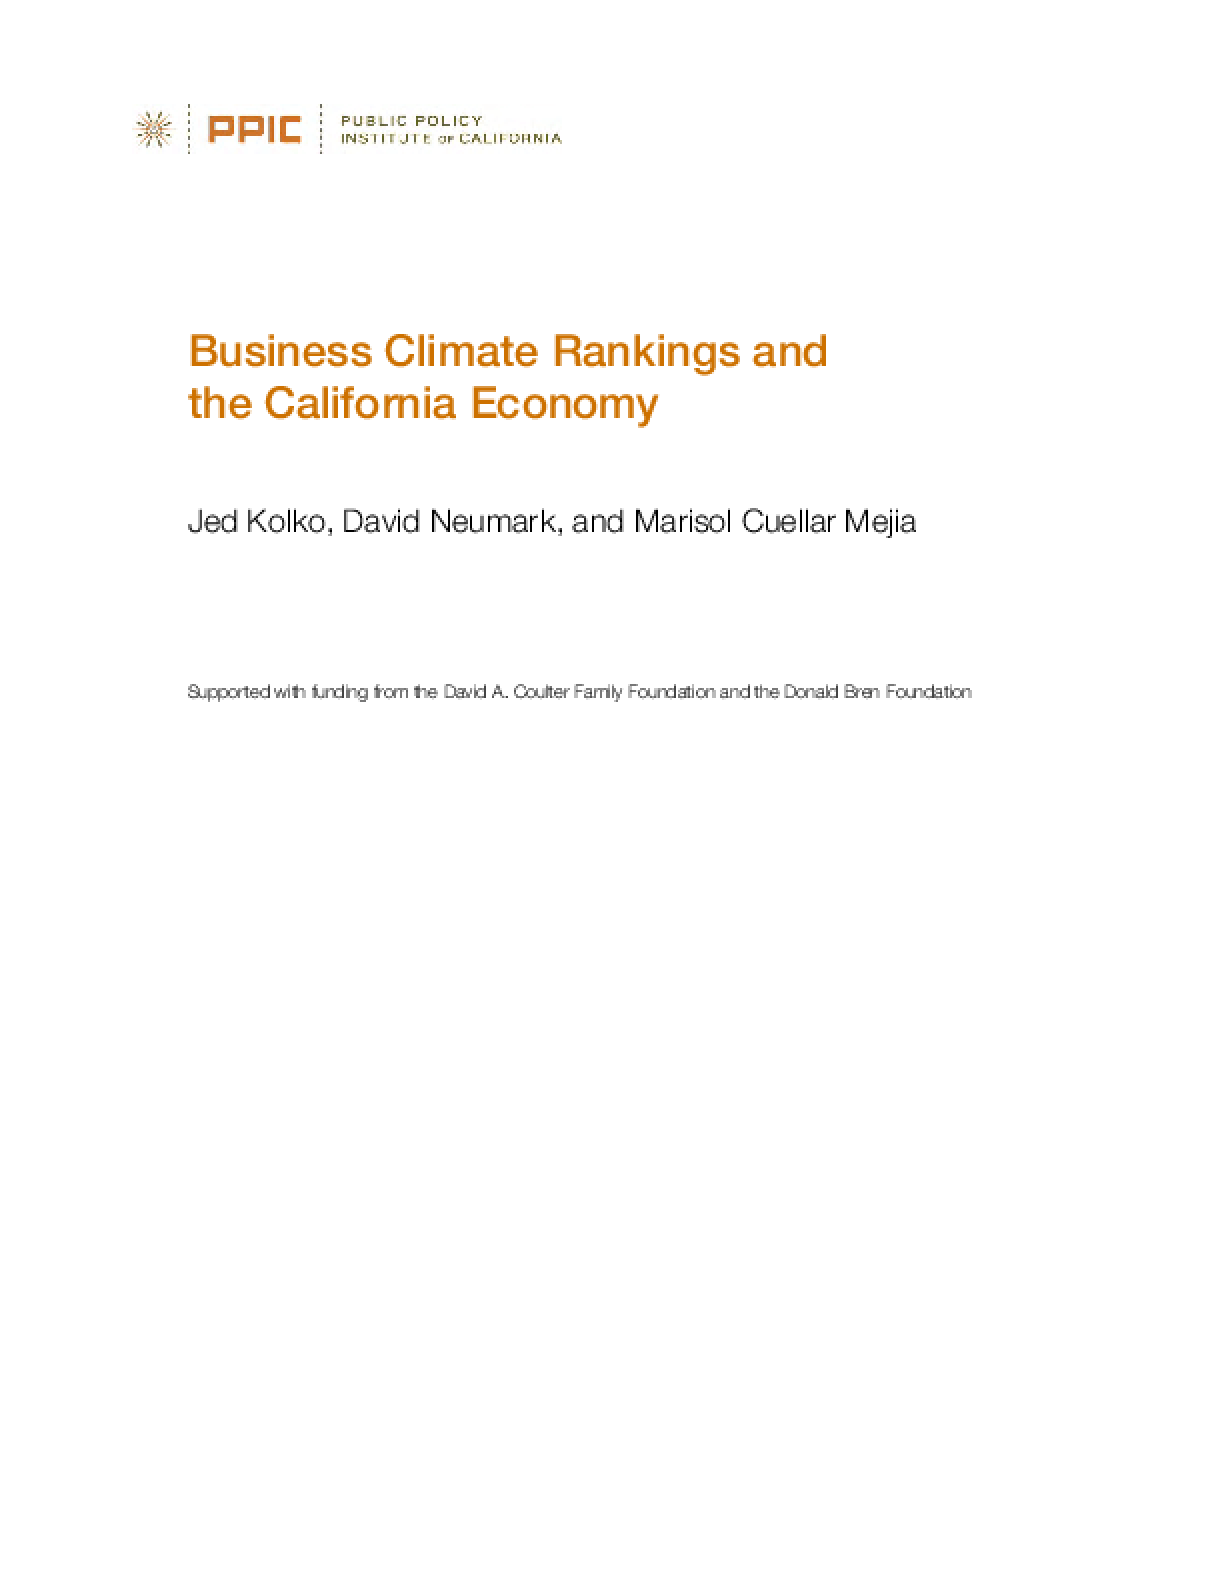 Business Climate Rankings and the California Economy